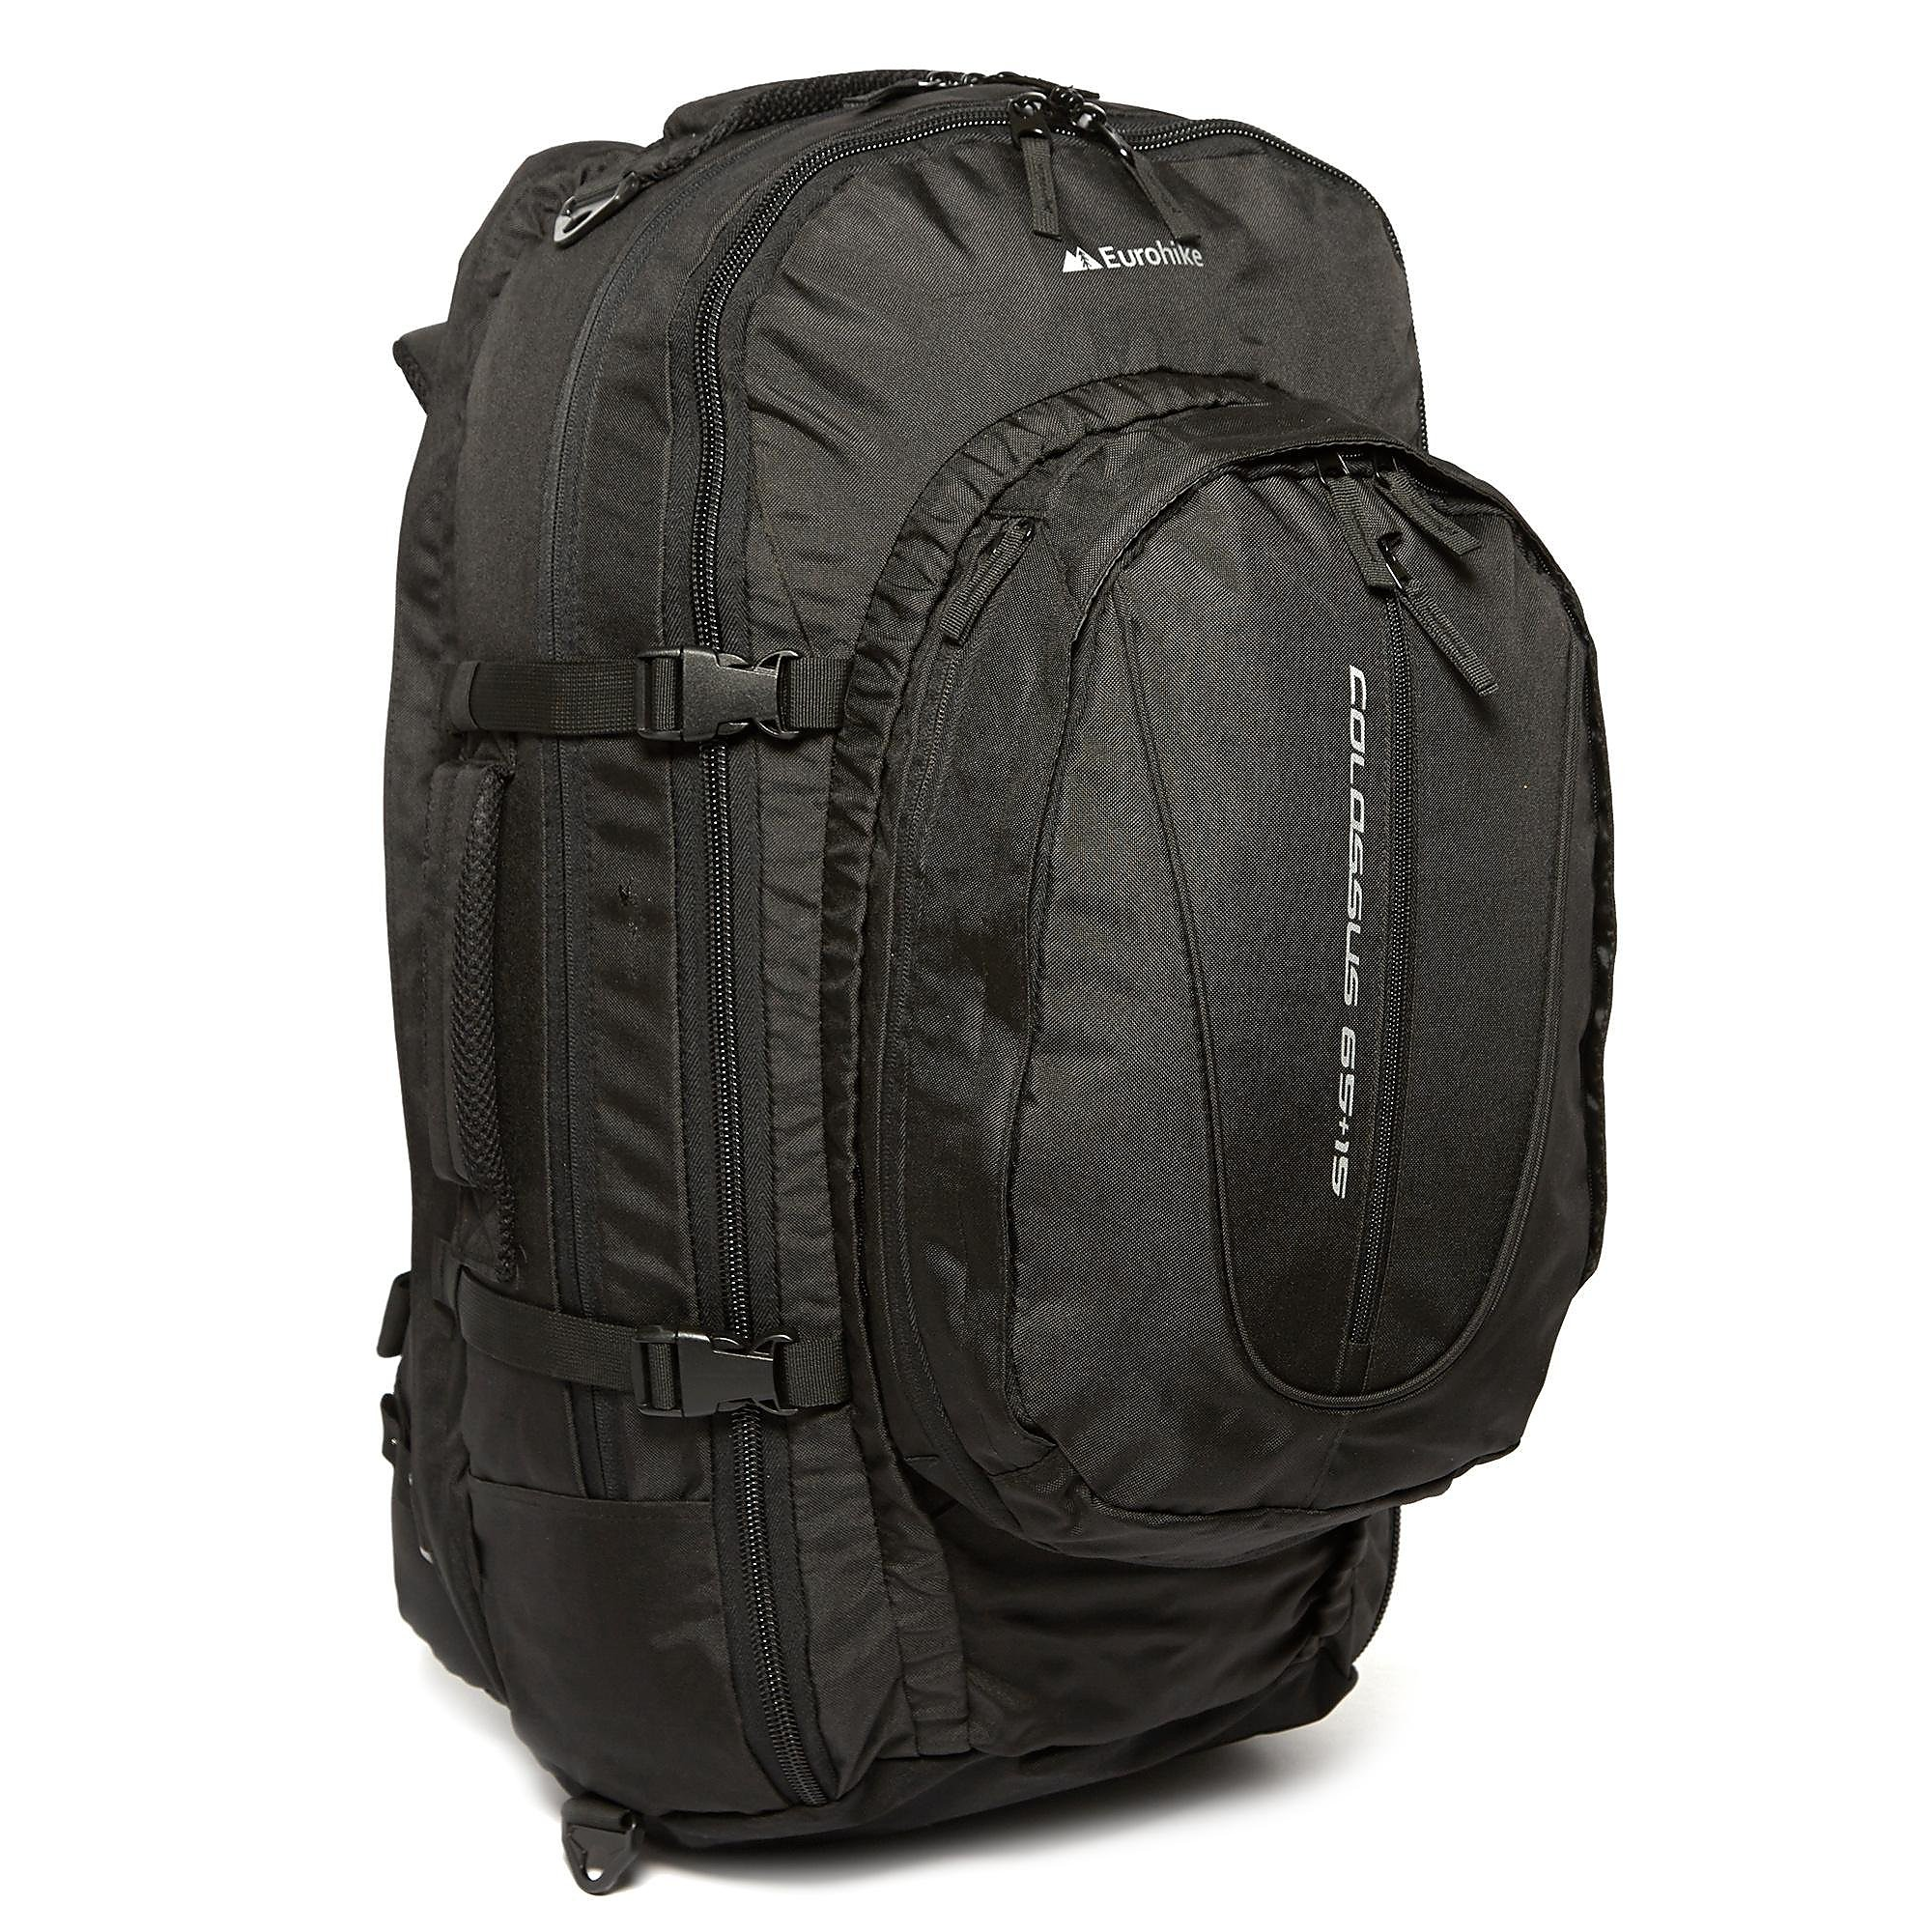 Eurohike Colossus 65+15 Travel Pack